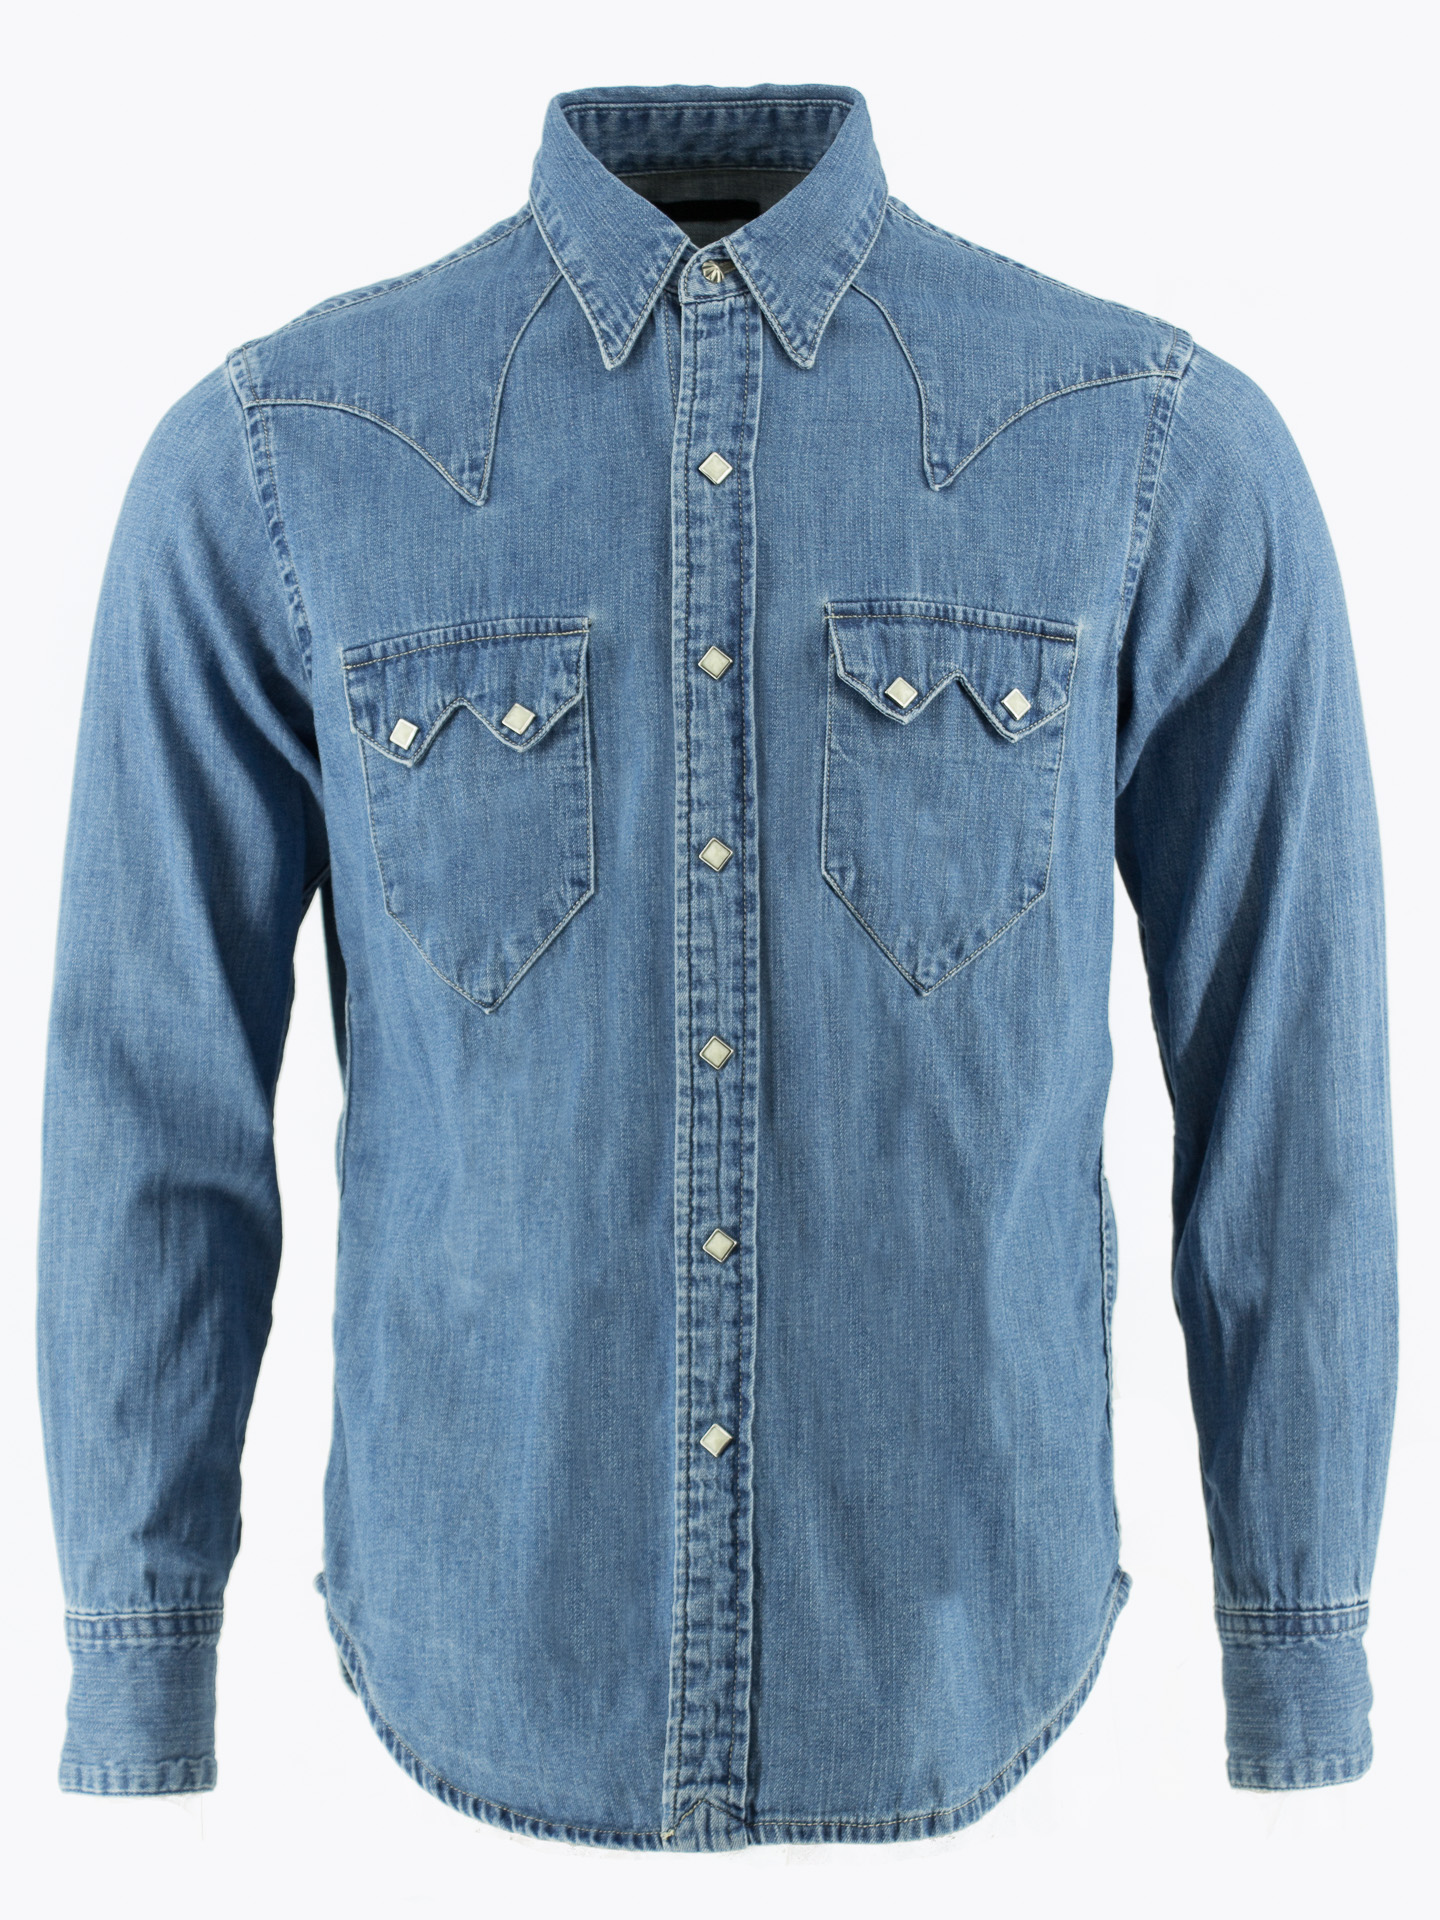 Western shirt sawtooth pockets denim shirt Cowboy shirt